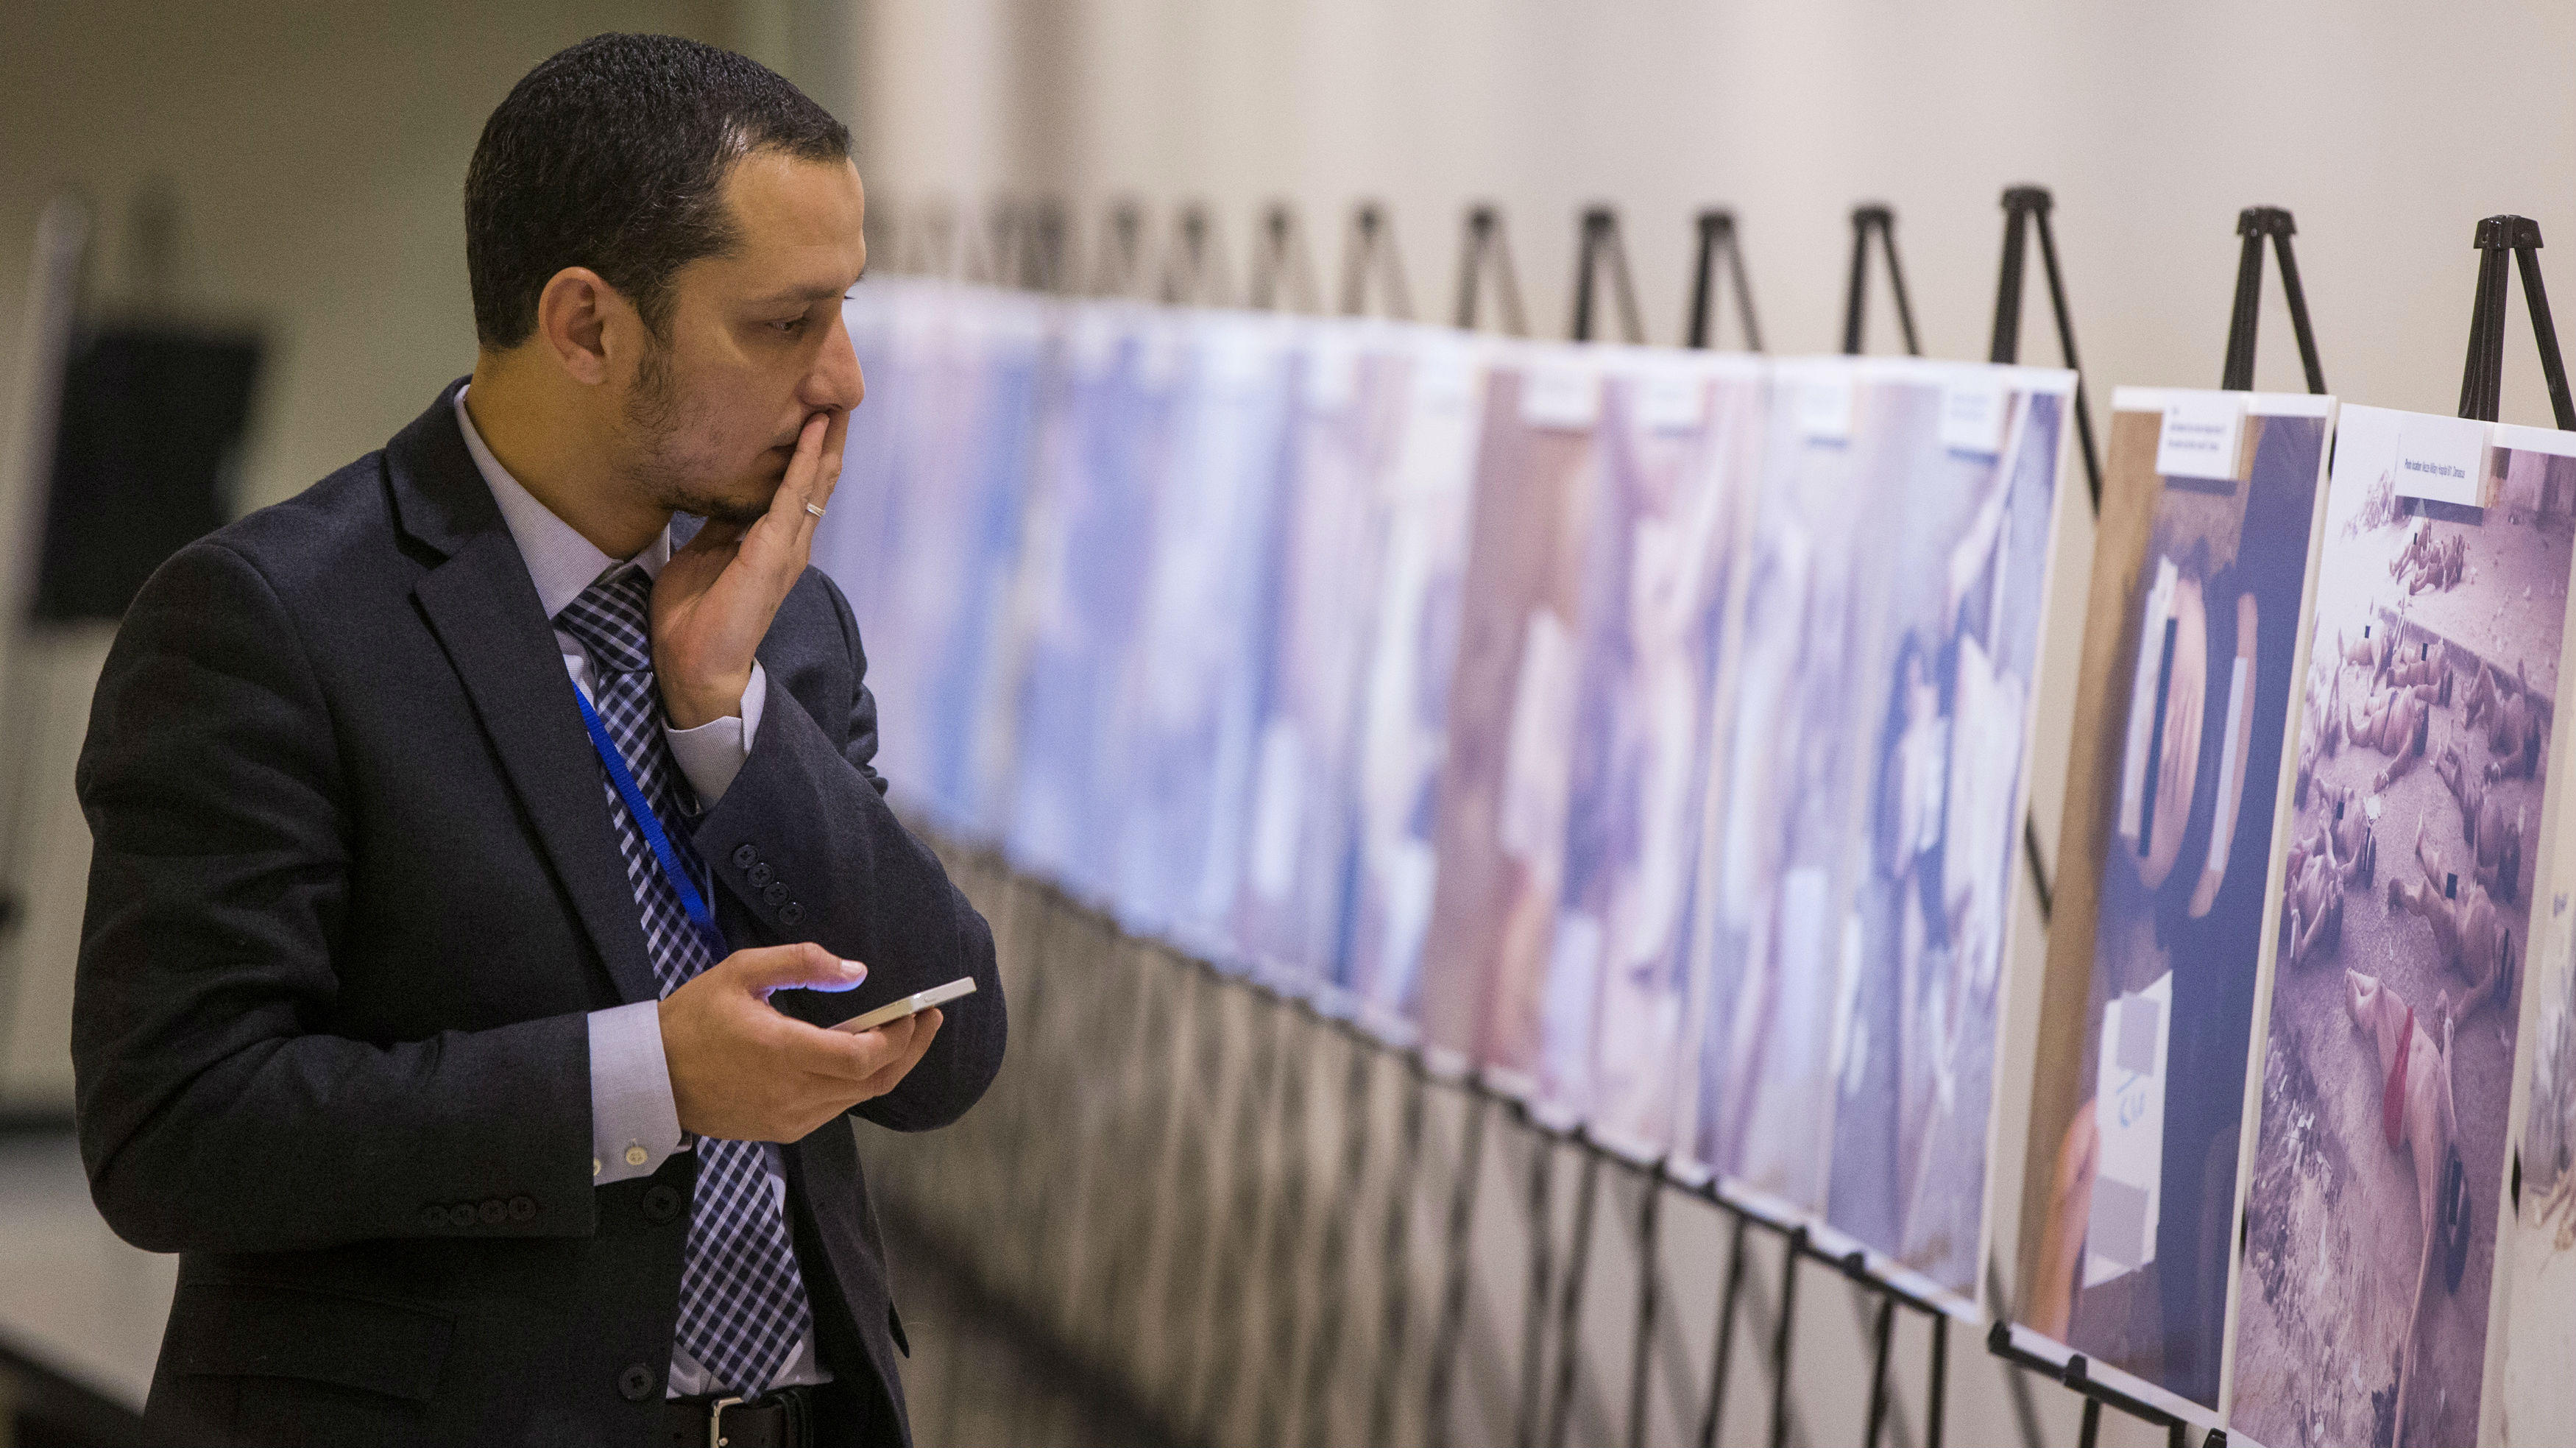 """A man reacts as he looks at a gruesome collection of images of dead bodies taken by a photographer, who has been identified by the code name """"Caesar,"""" at the United Nations Headquarters in New York, March 10, 2015. The pictures were smuggled out of Syria between 2011 and mid-2013. The exhibition at the UN consists of two dozen images selected from the roughly 55,000 photographs taken in Syria by a former military police photographer - some showing eye gougings, strangulation and long-term starvation - as the conflict in Syria enters its fifth year. REUTERS/Lucas Jackson (UNITED STATES - Tags: POLITICS CIVIL UNREST CONFLICT) TEMPLATE OUT"""